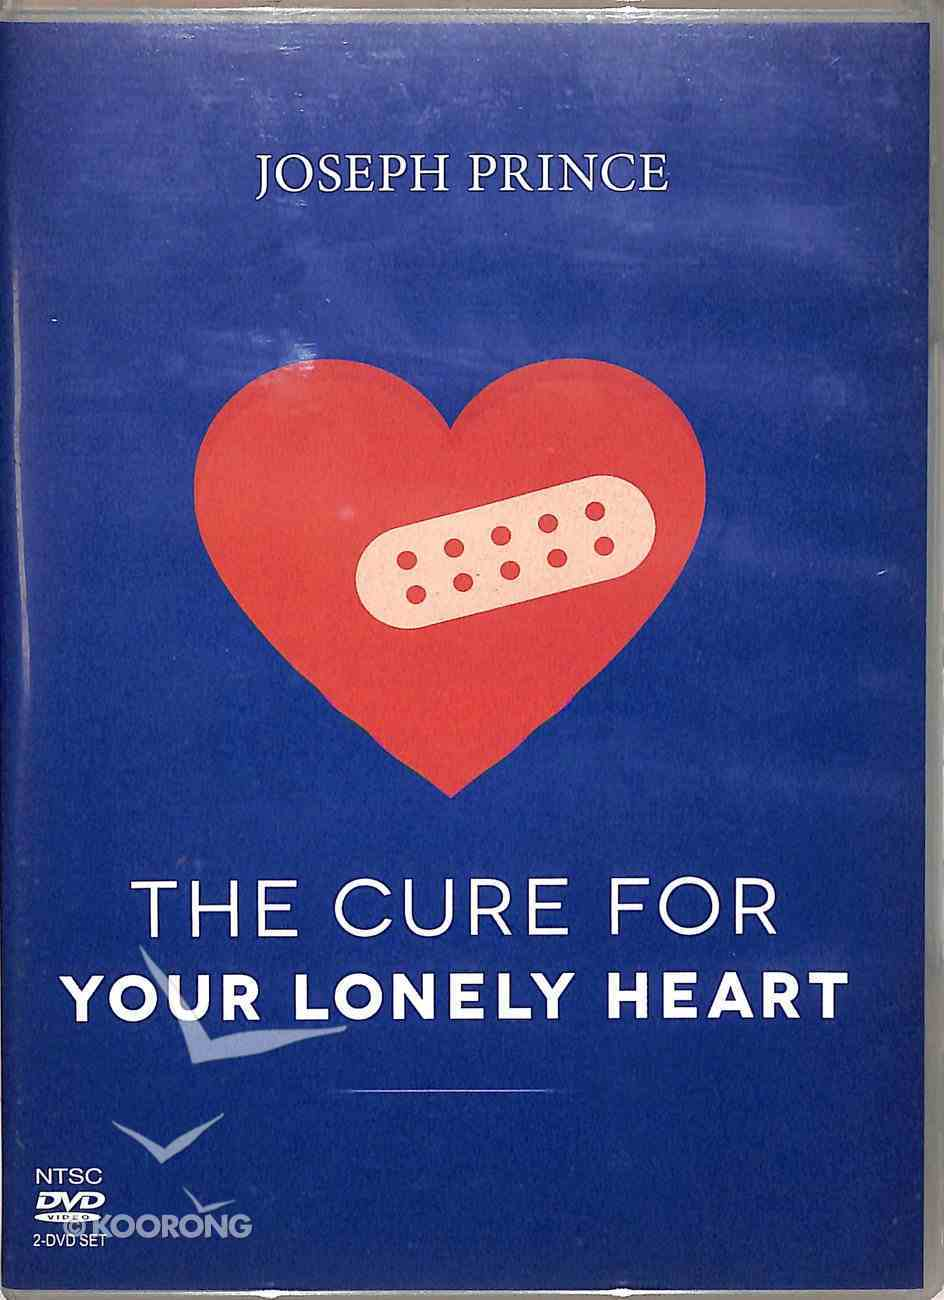 The Cure For Your Lonely Heart (2 Dvds) DVD